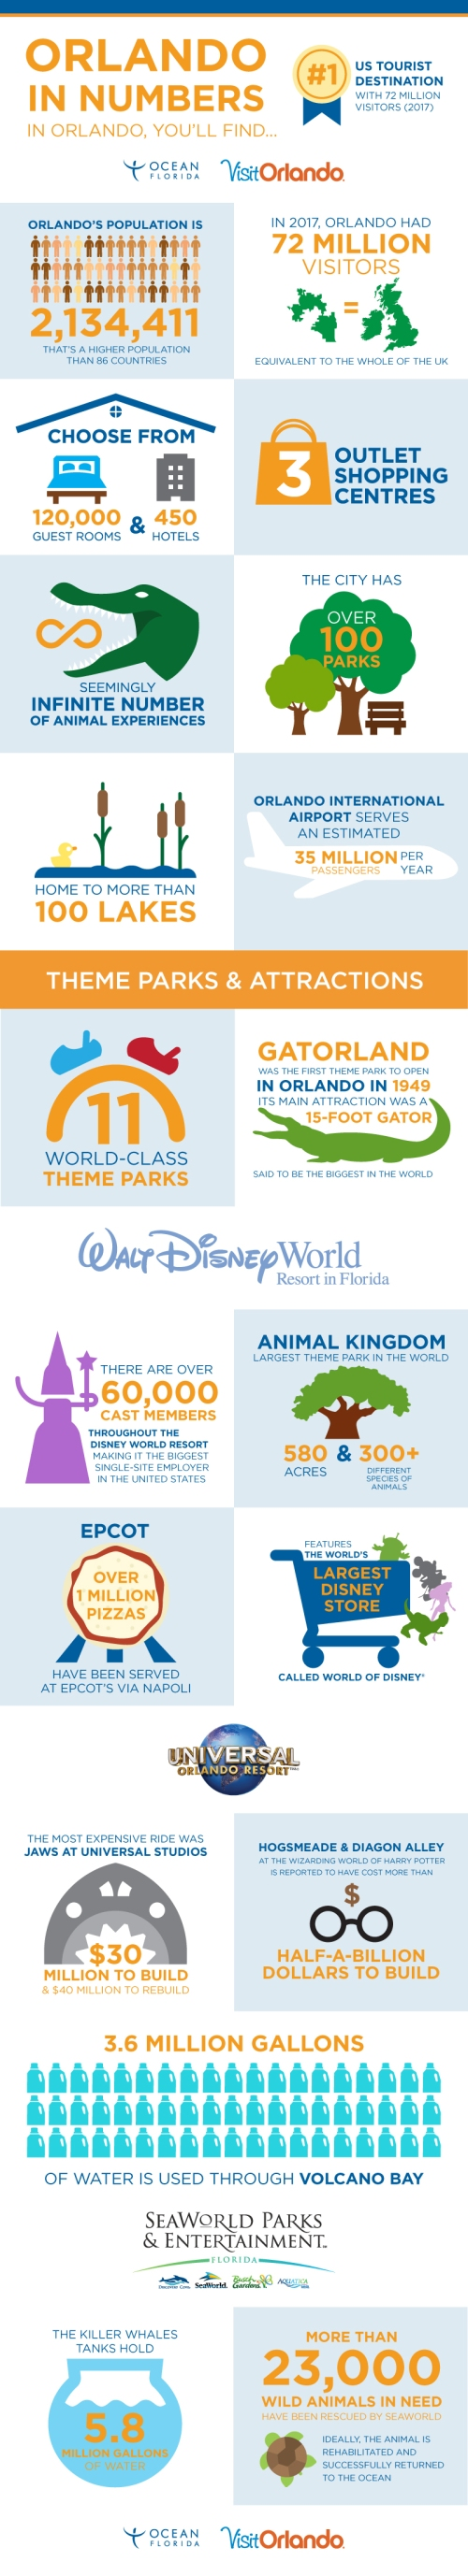 This infographic includes impressive facts and numbers about Orlando, Florida.